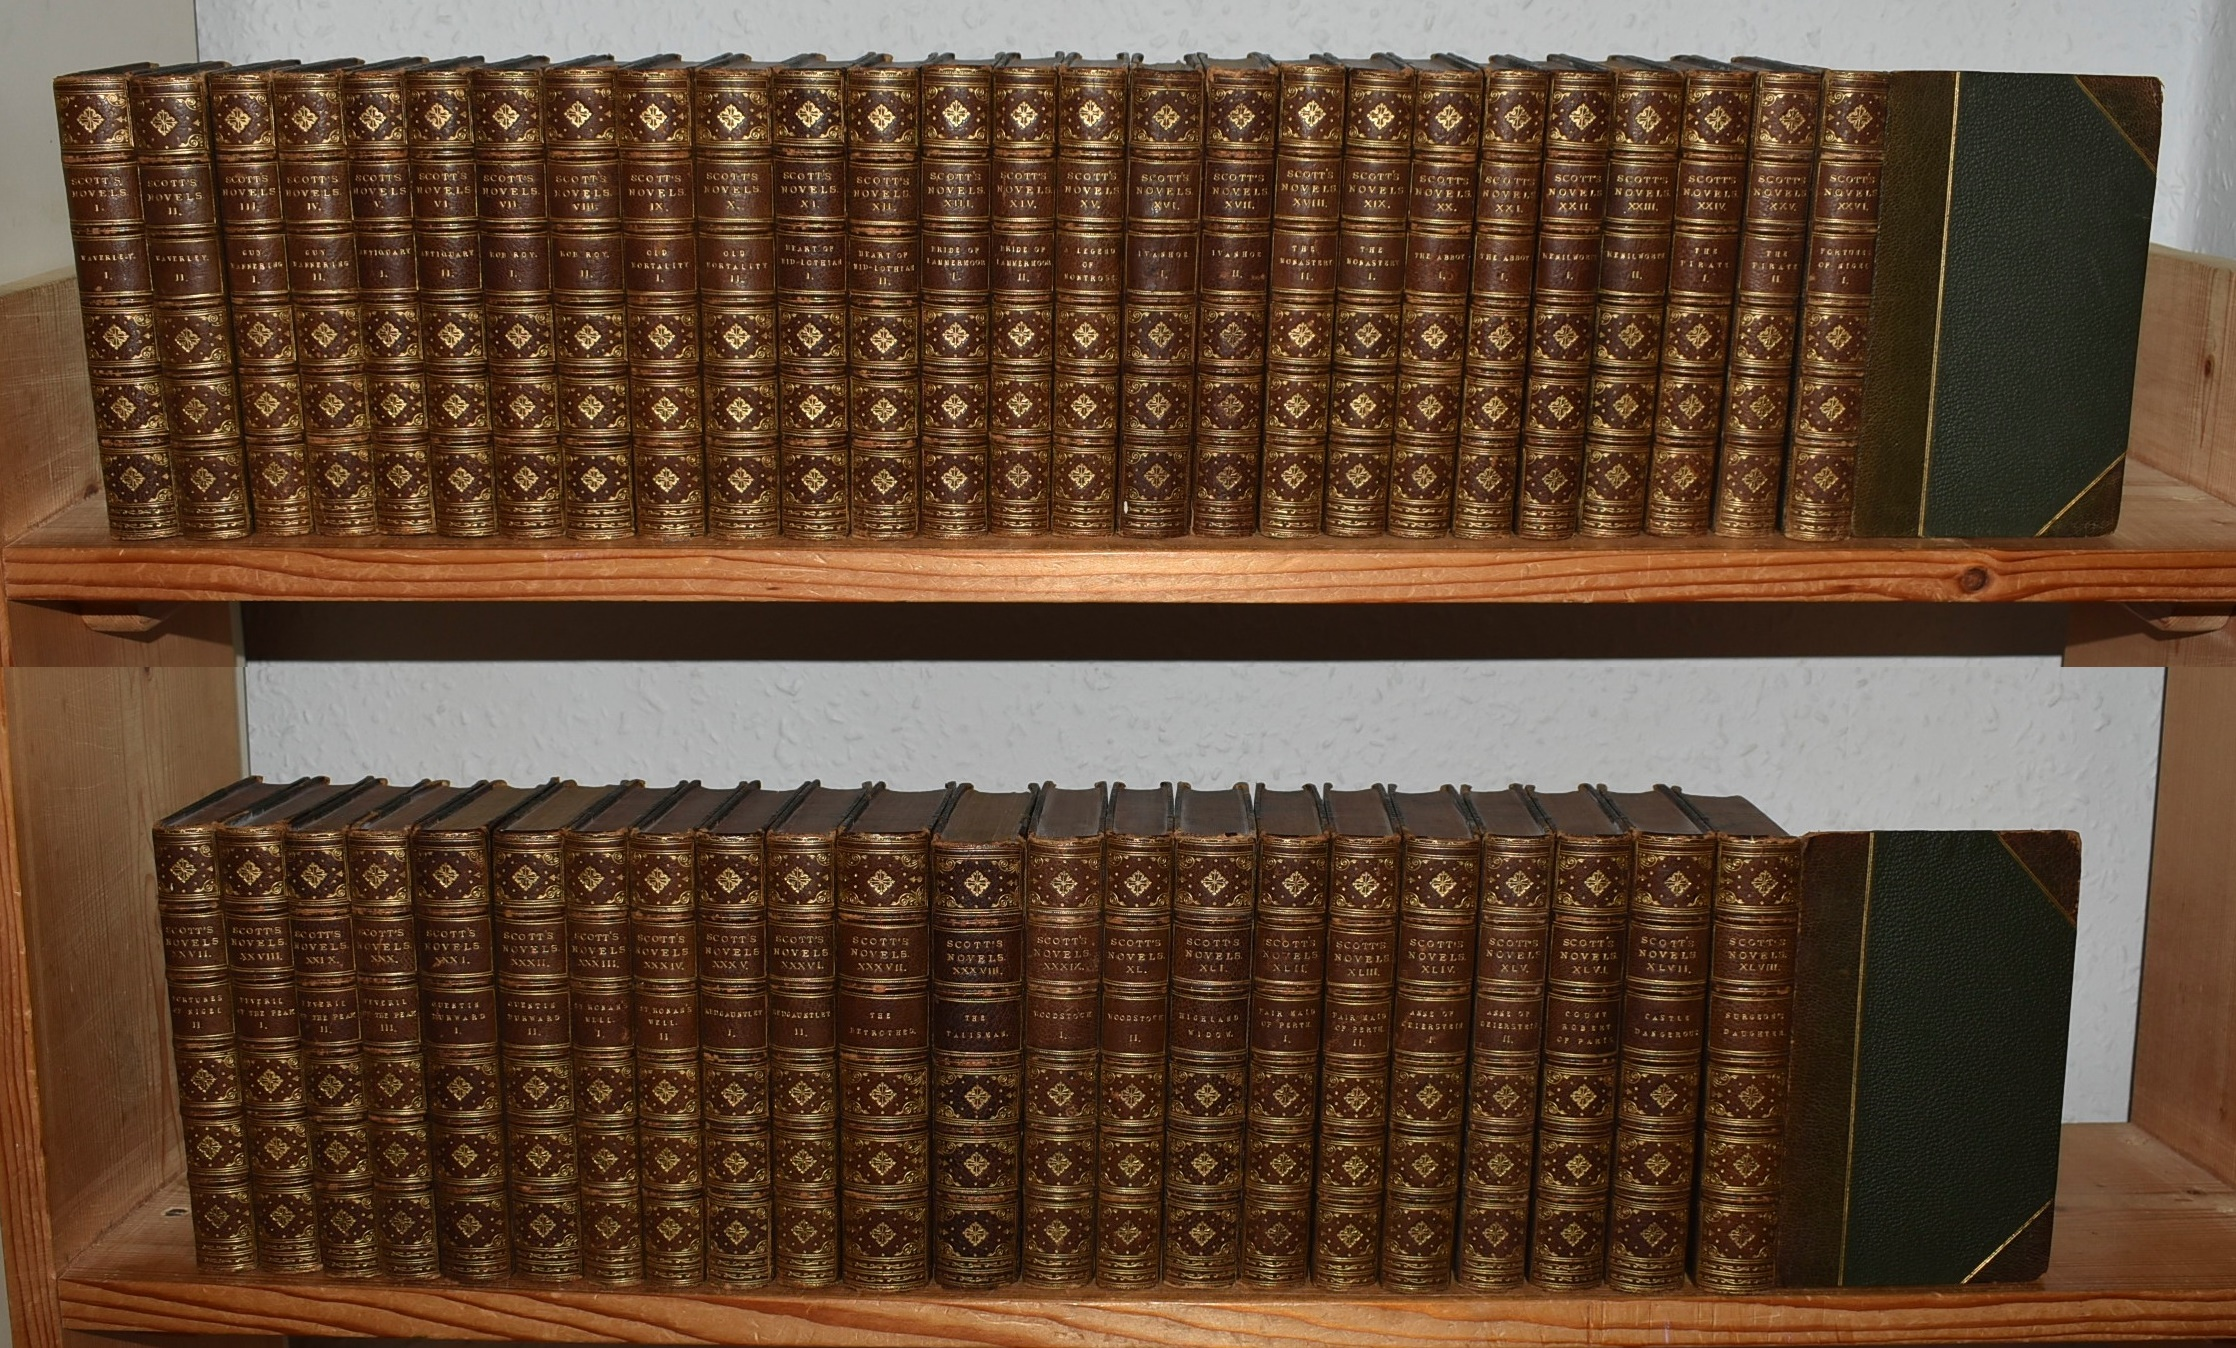 Image for The Waverley Novels. Complete Set in 48 Volumes. Decorative Leather.